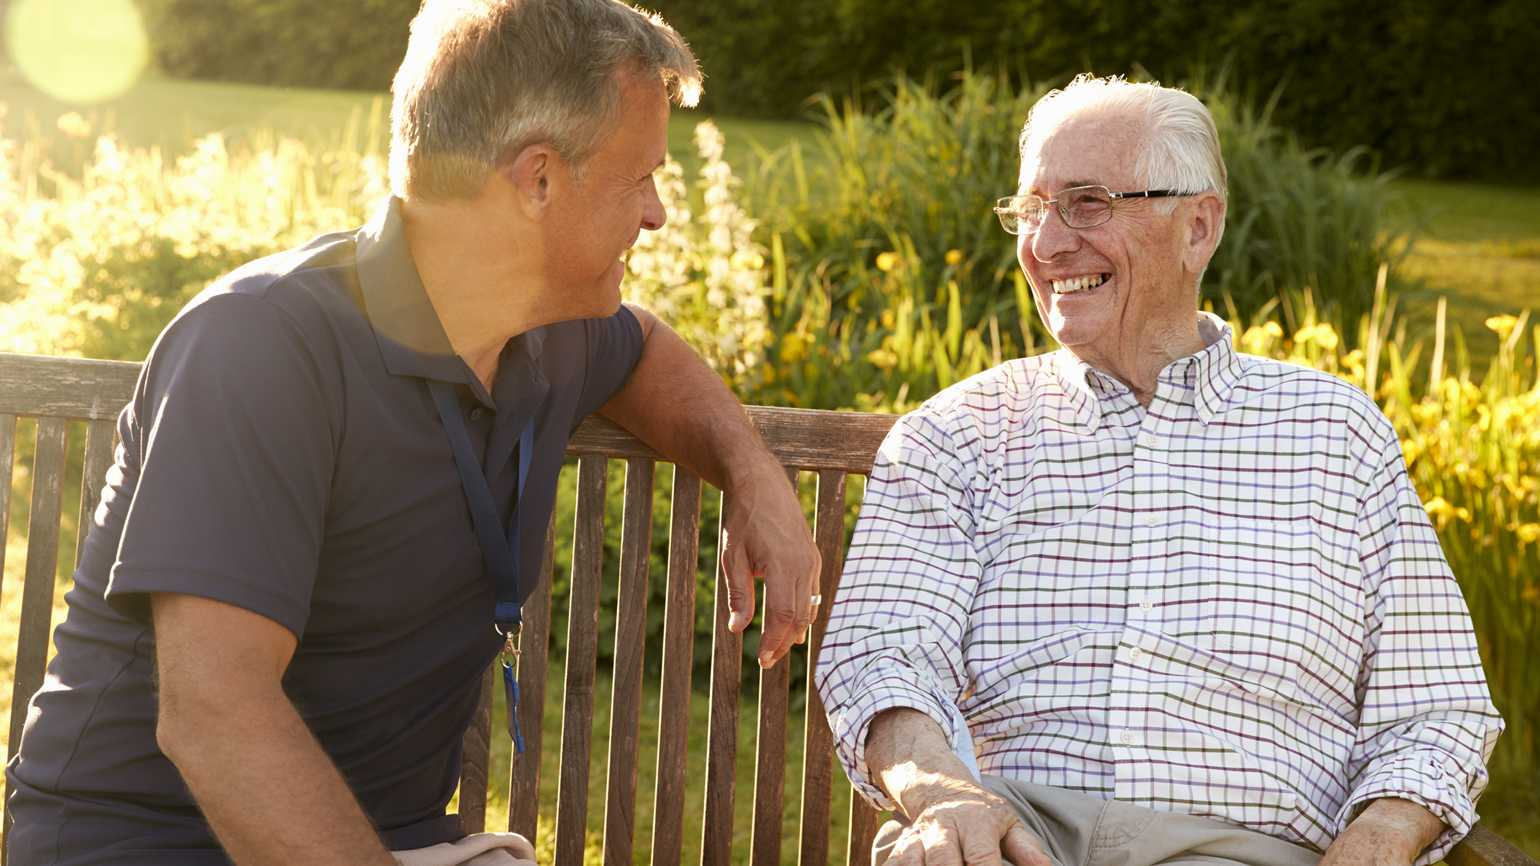 3 Questions to Ask After a Loved One is Diagnosed with Dementia